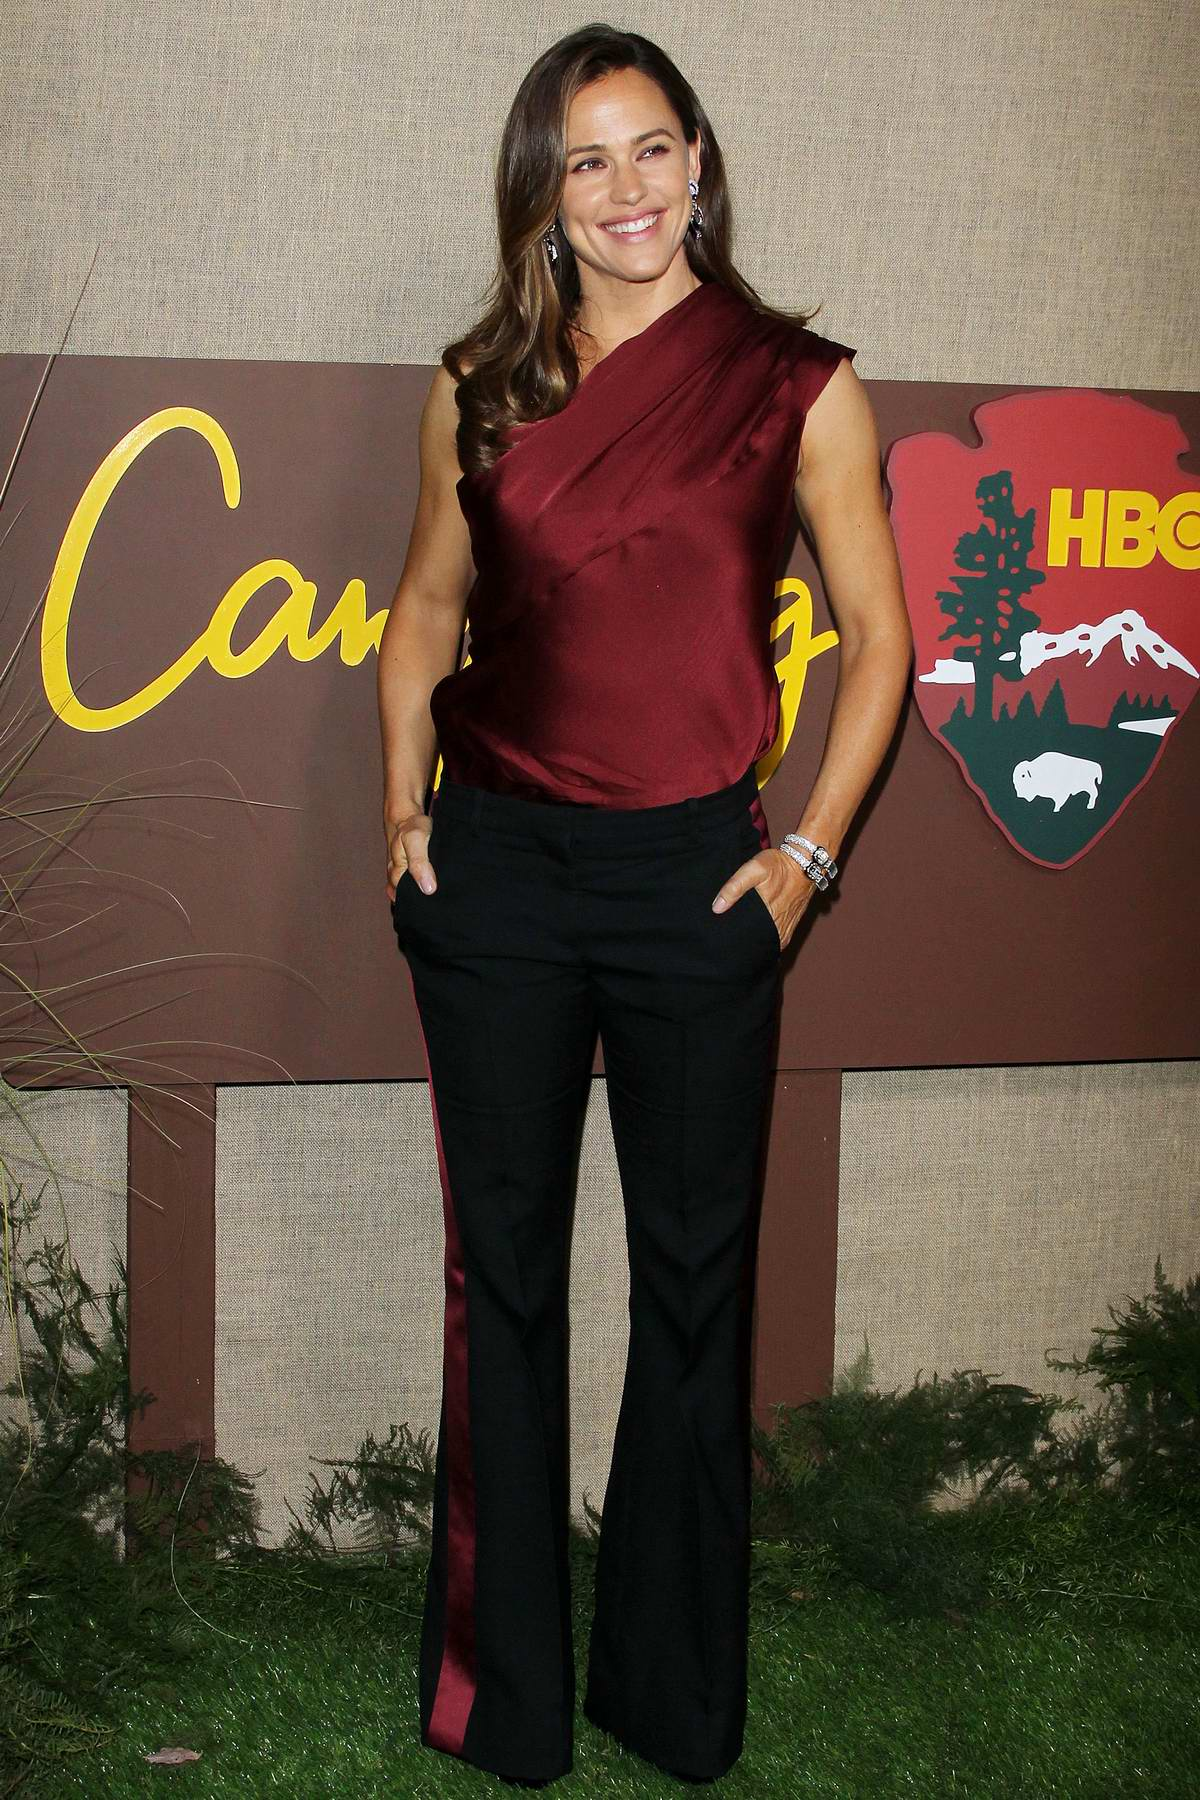 Jennifer Garner attends the premiere of HBO's new show 'Camping' in Los Angeles